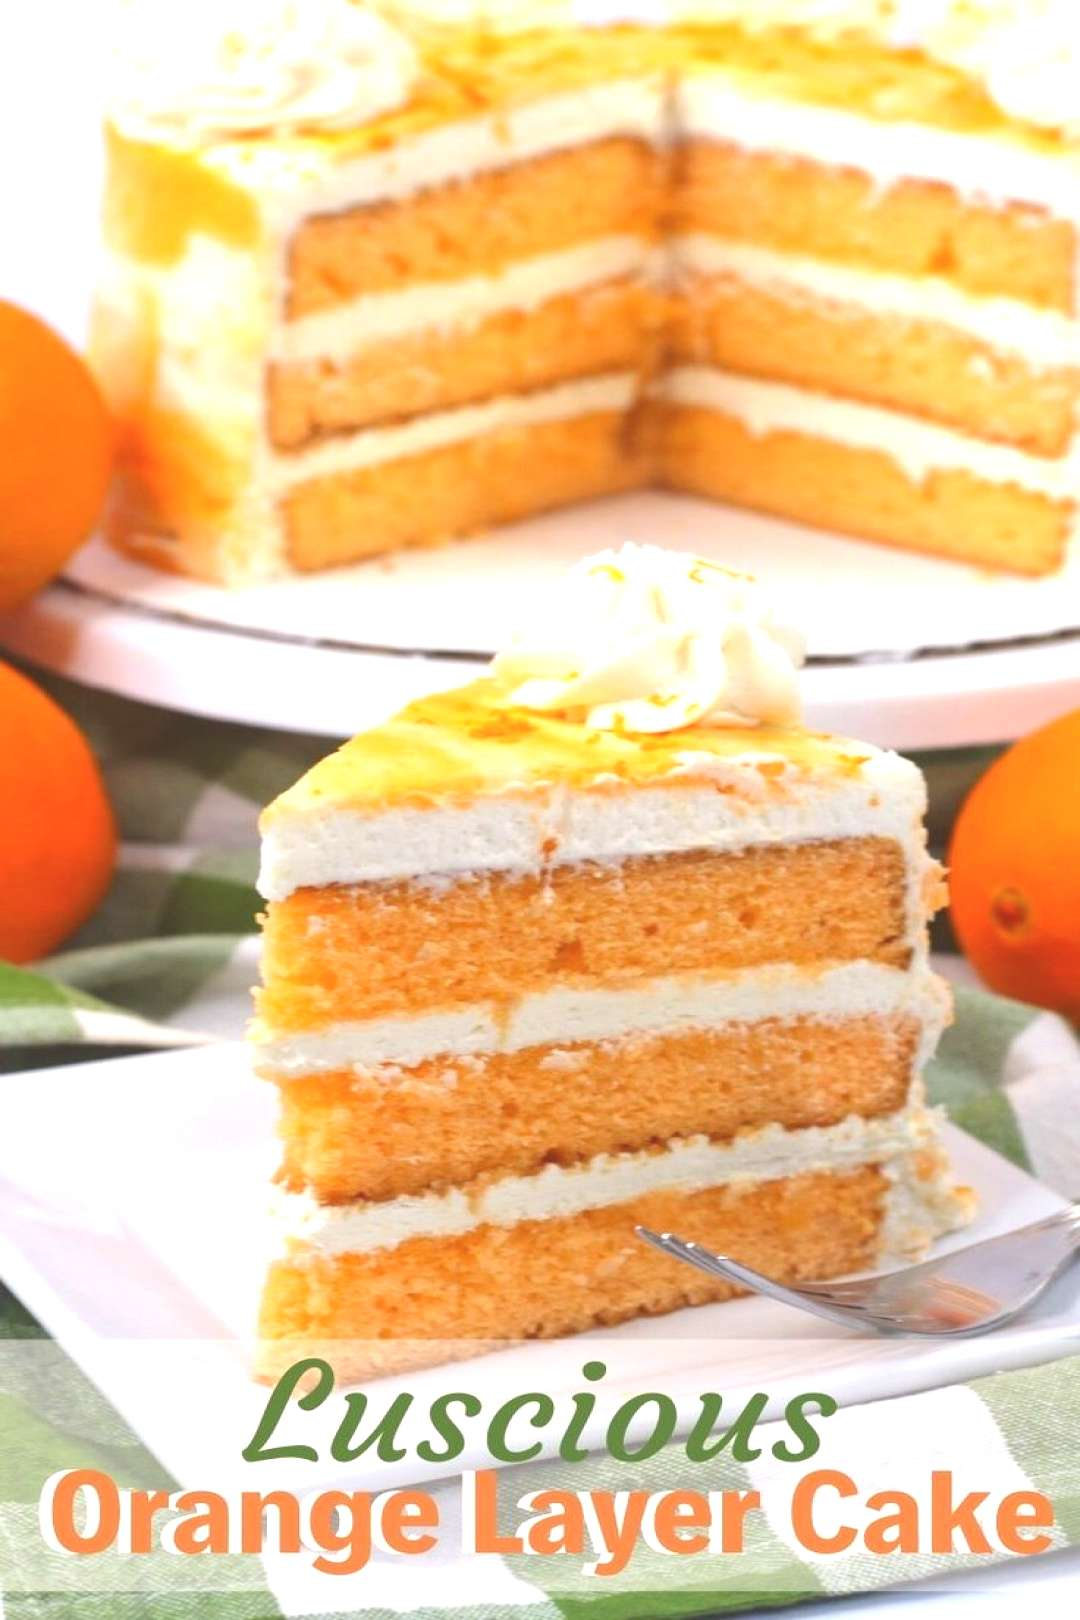 Layered Orange Cake Light, delicate and delicious, this layered orange cake is the perfect spring d